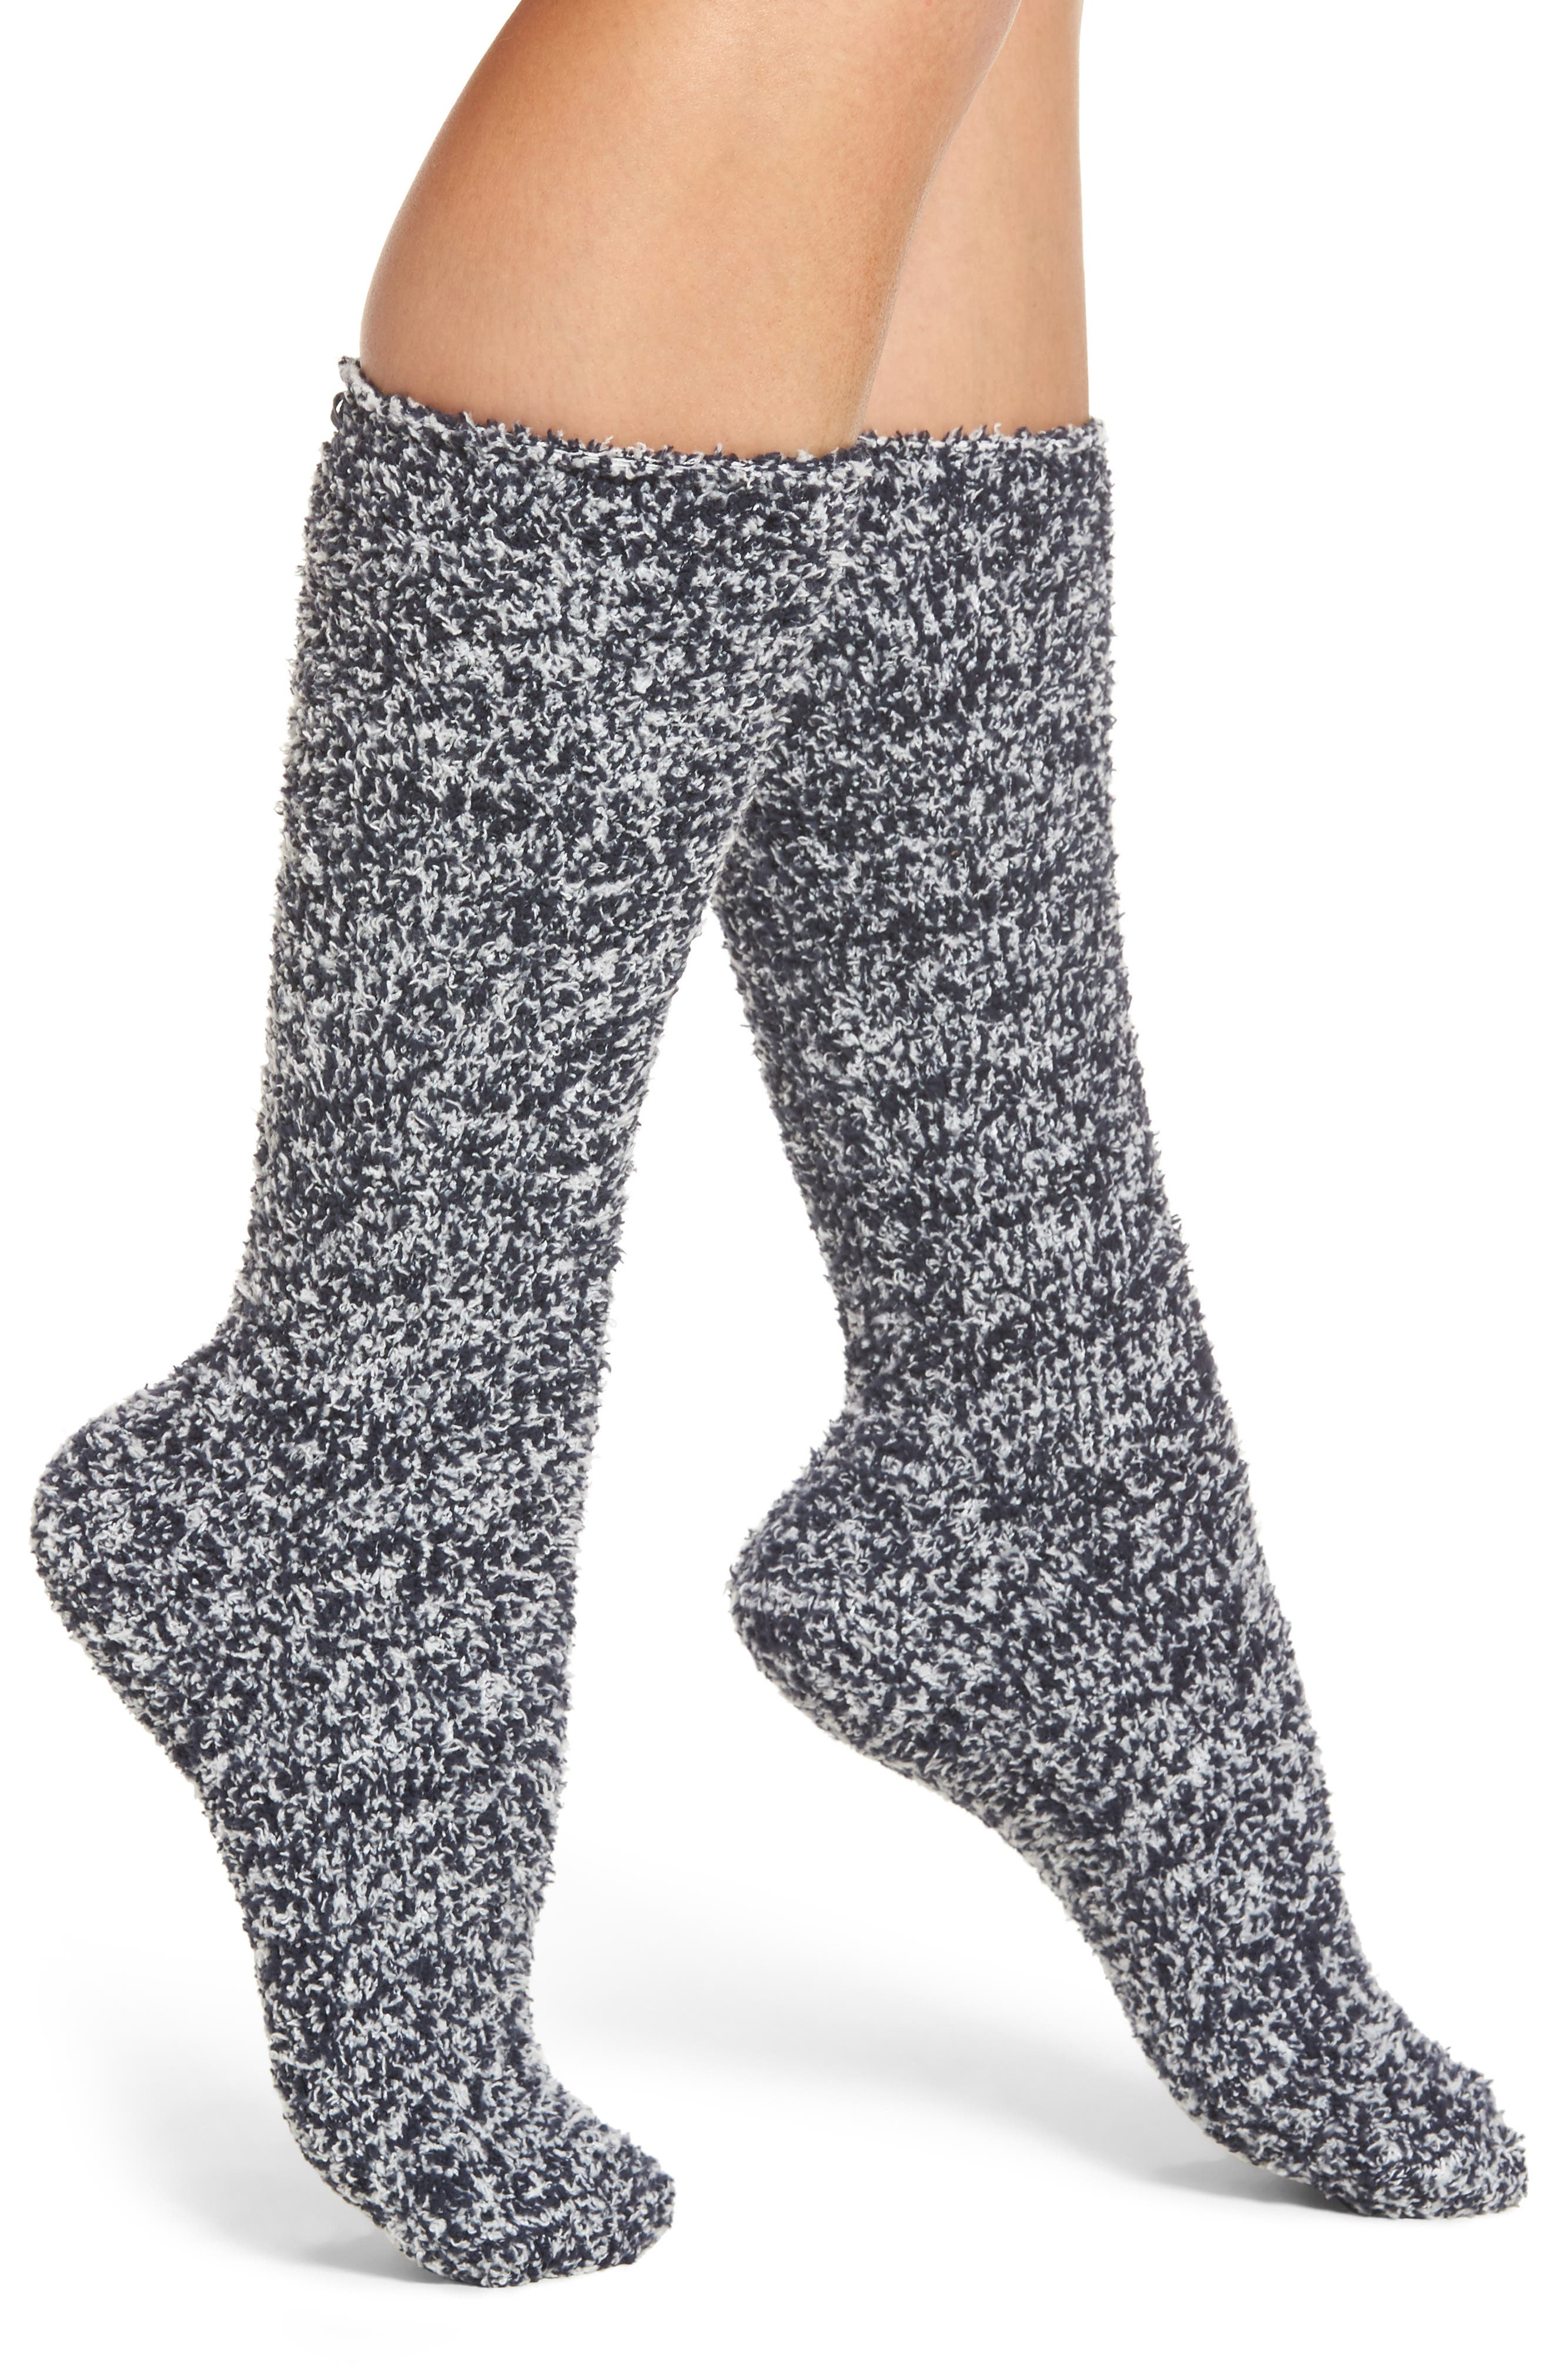 CozyChic<sup>®</sup> Socks,                         Main,                         color, INDIGO/ WHITE